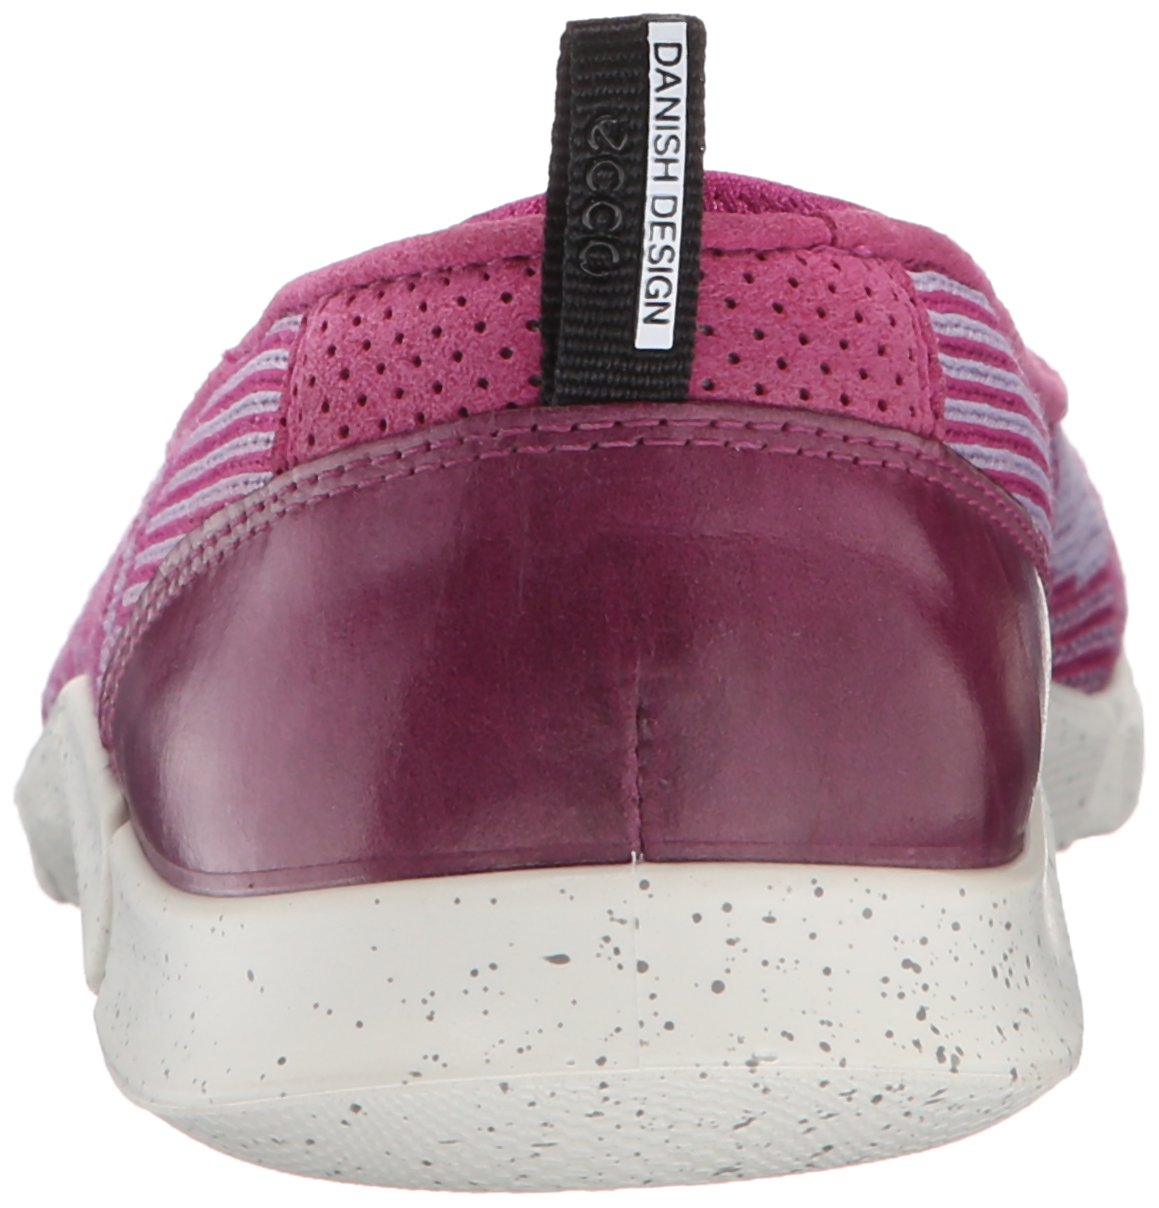 ECCO Women's Intrinsic Karma Flat EU/8-8.5 Sporty Lifestyle B015KO02R6 39 EU/8-8.5 Flat M US|Fuchsia/Light Purple f49689